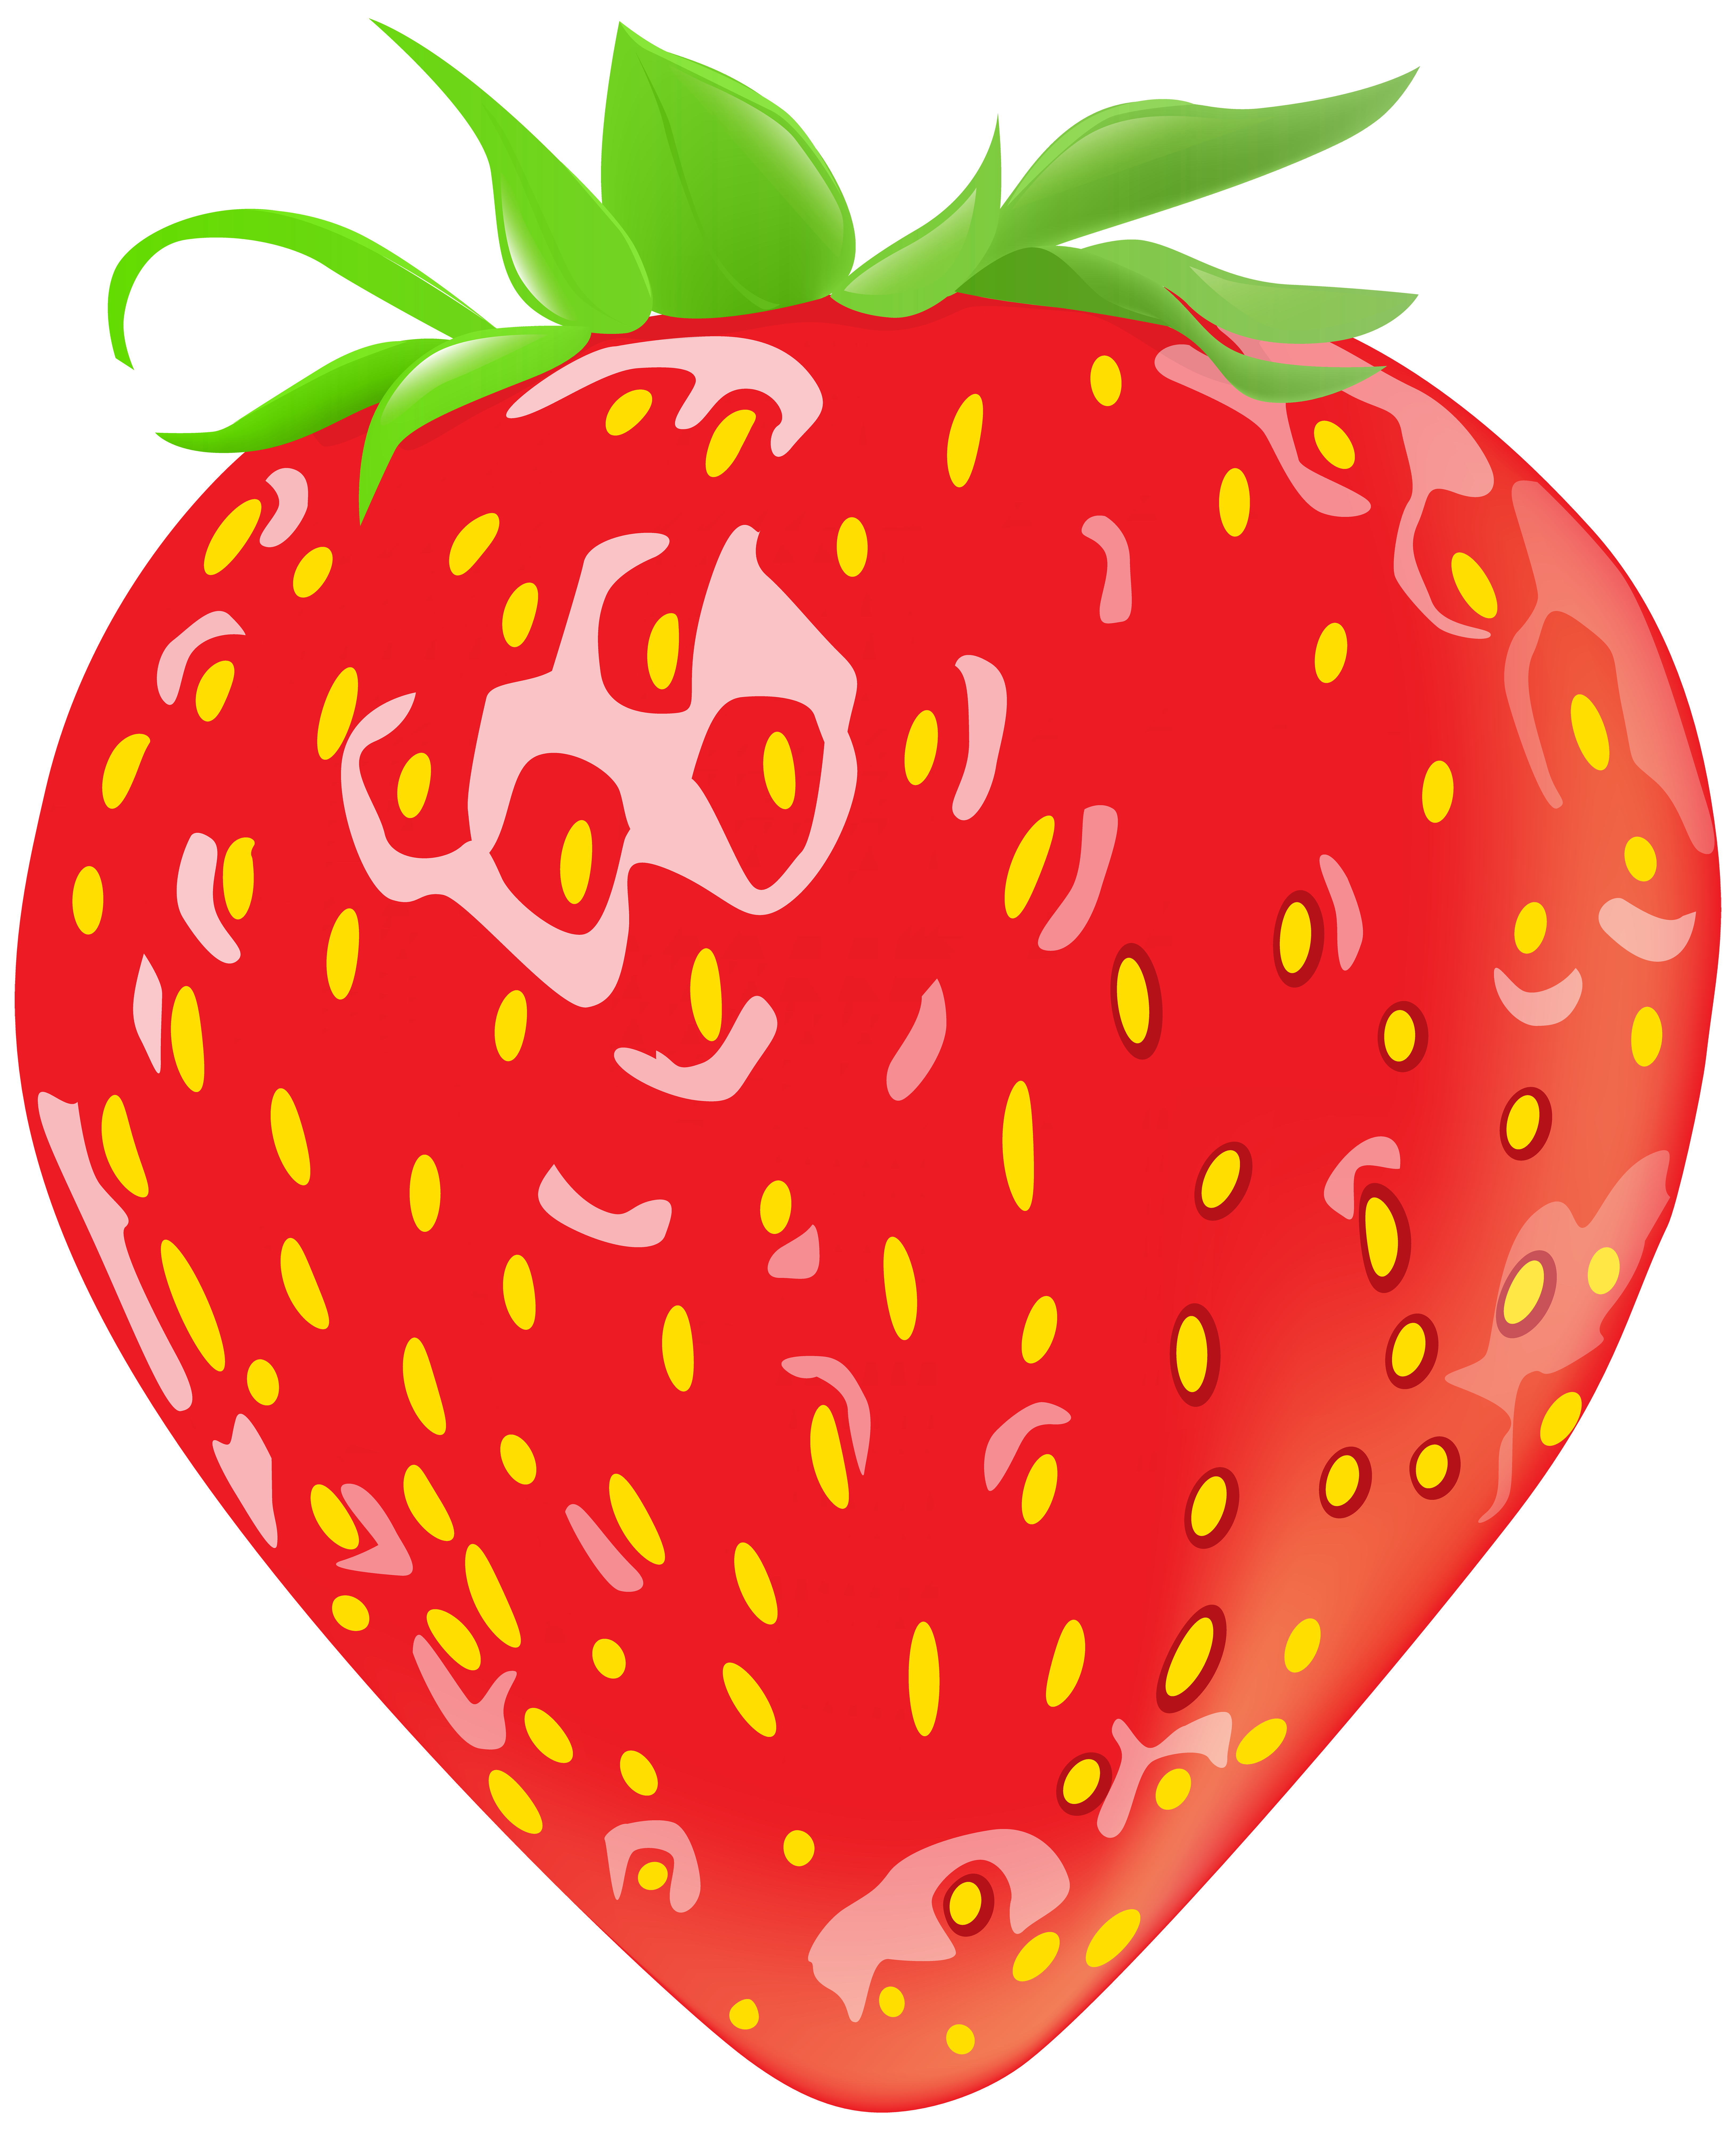 Hearts clipart strawberry. Transparent image gallery yopriceville